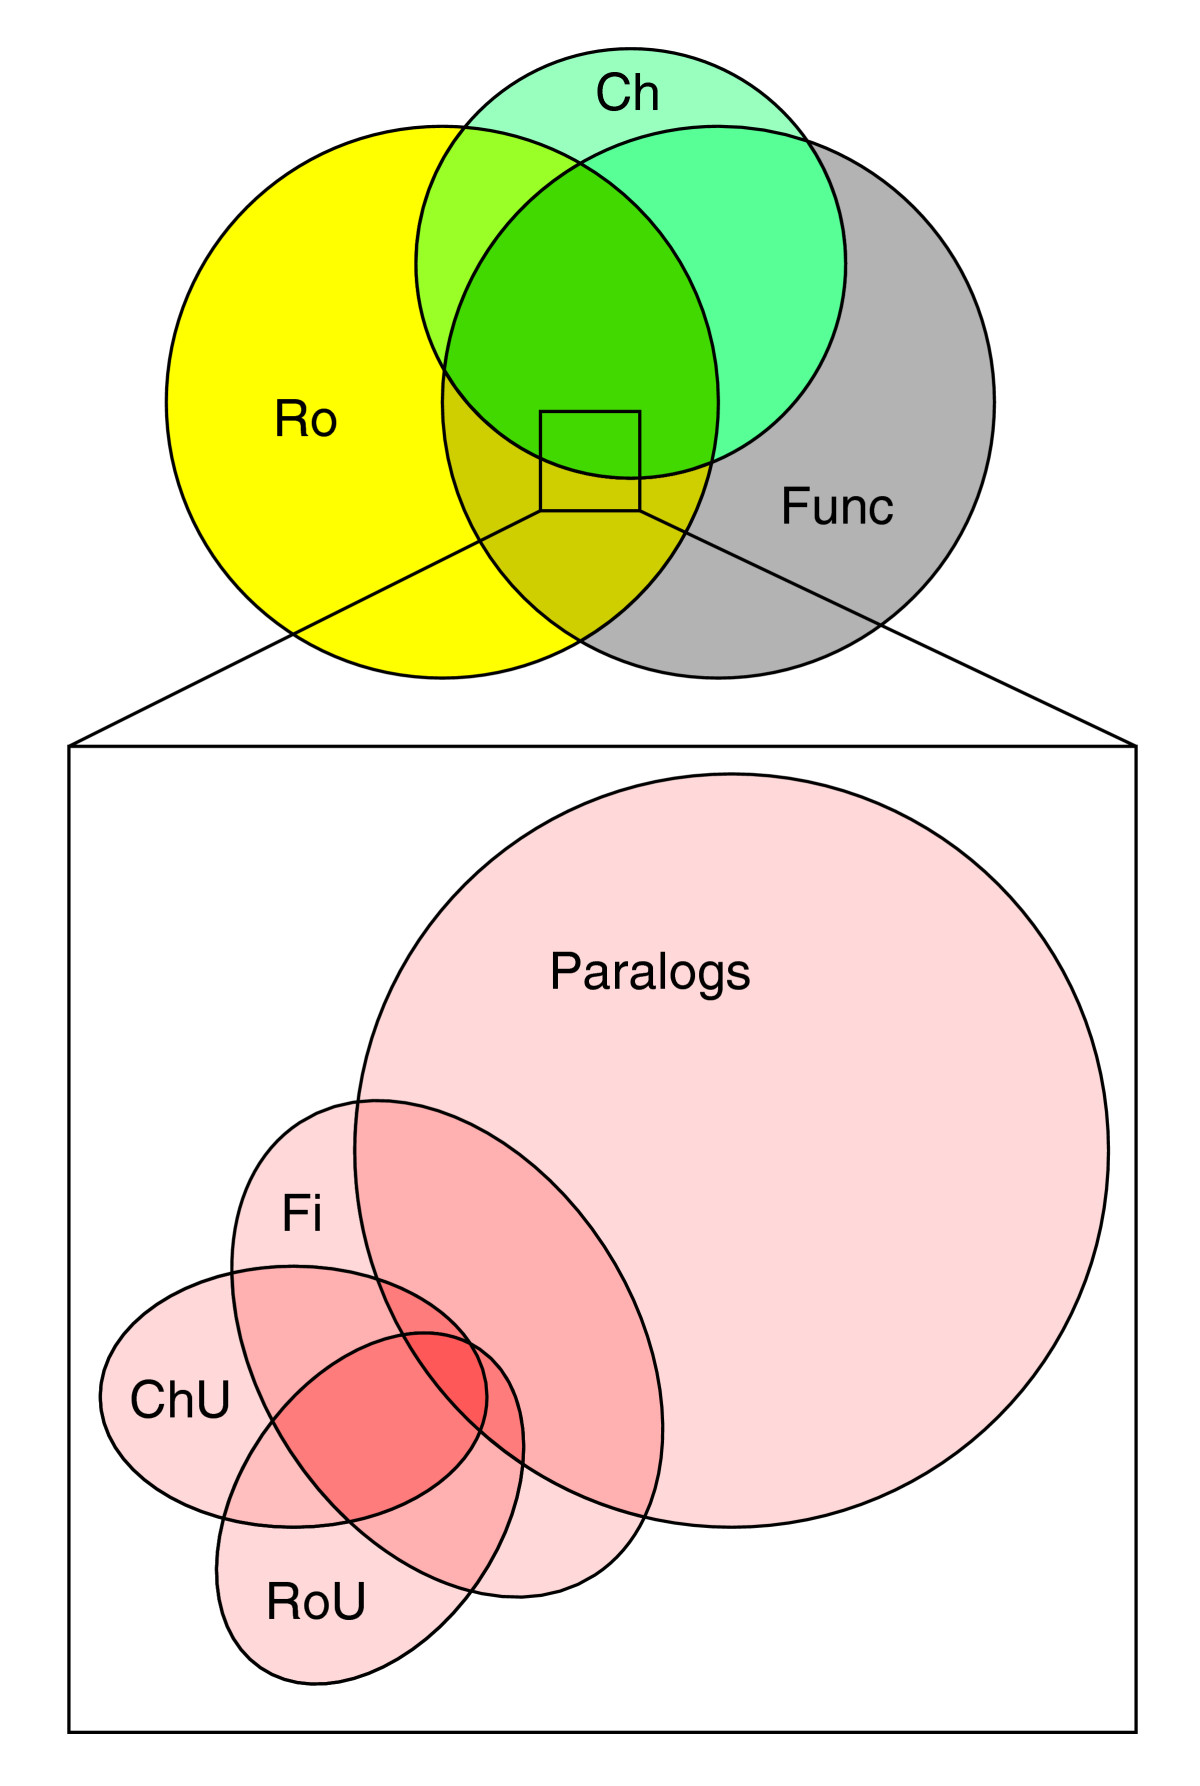 http://static-content.springer.com/image/art%3A10.1186%2Fgb-2005-6-7-115/MediaObjects/13059_2005_Article_935_Fig3_HTML.jpg